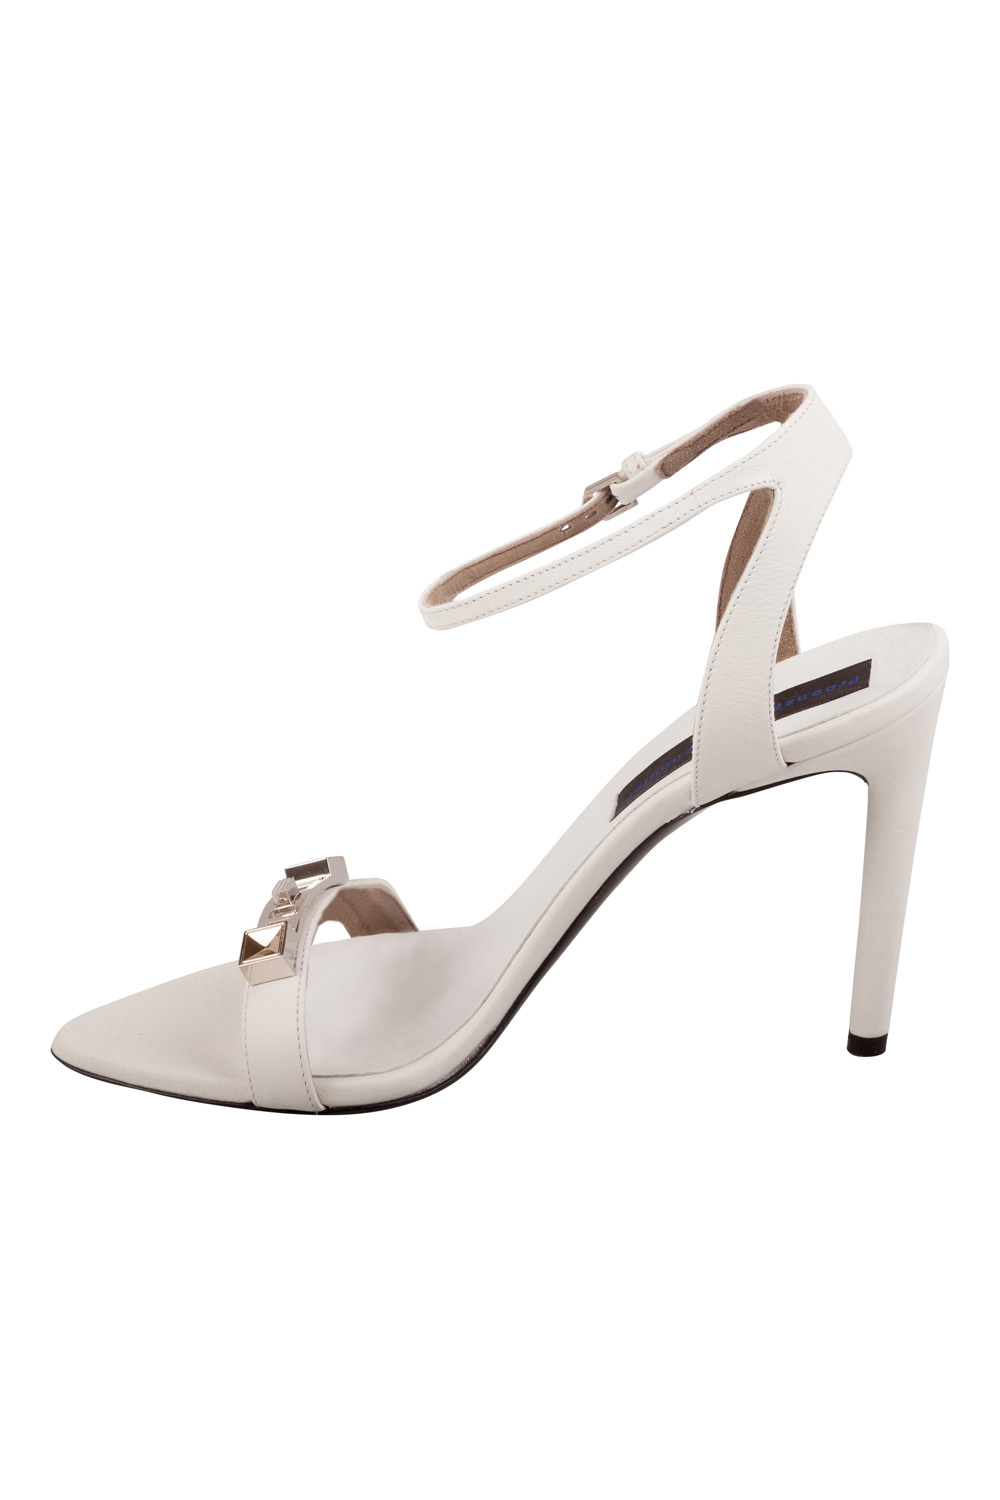 Proenza Schouler White Leather Ps11 Hardware  Ankle Strap Sandals Size 38